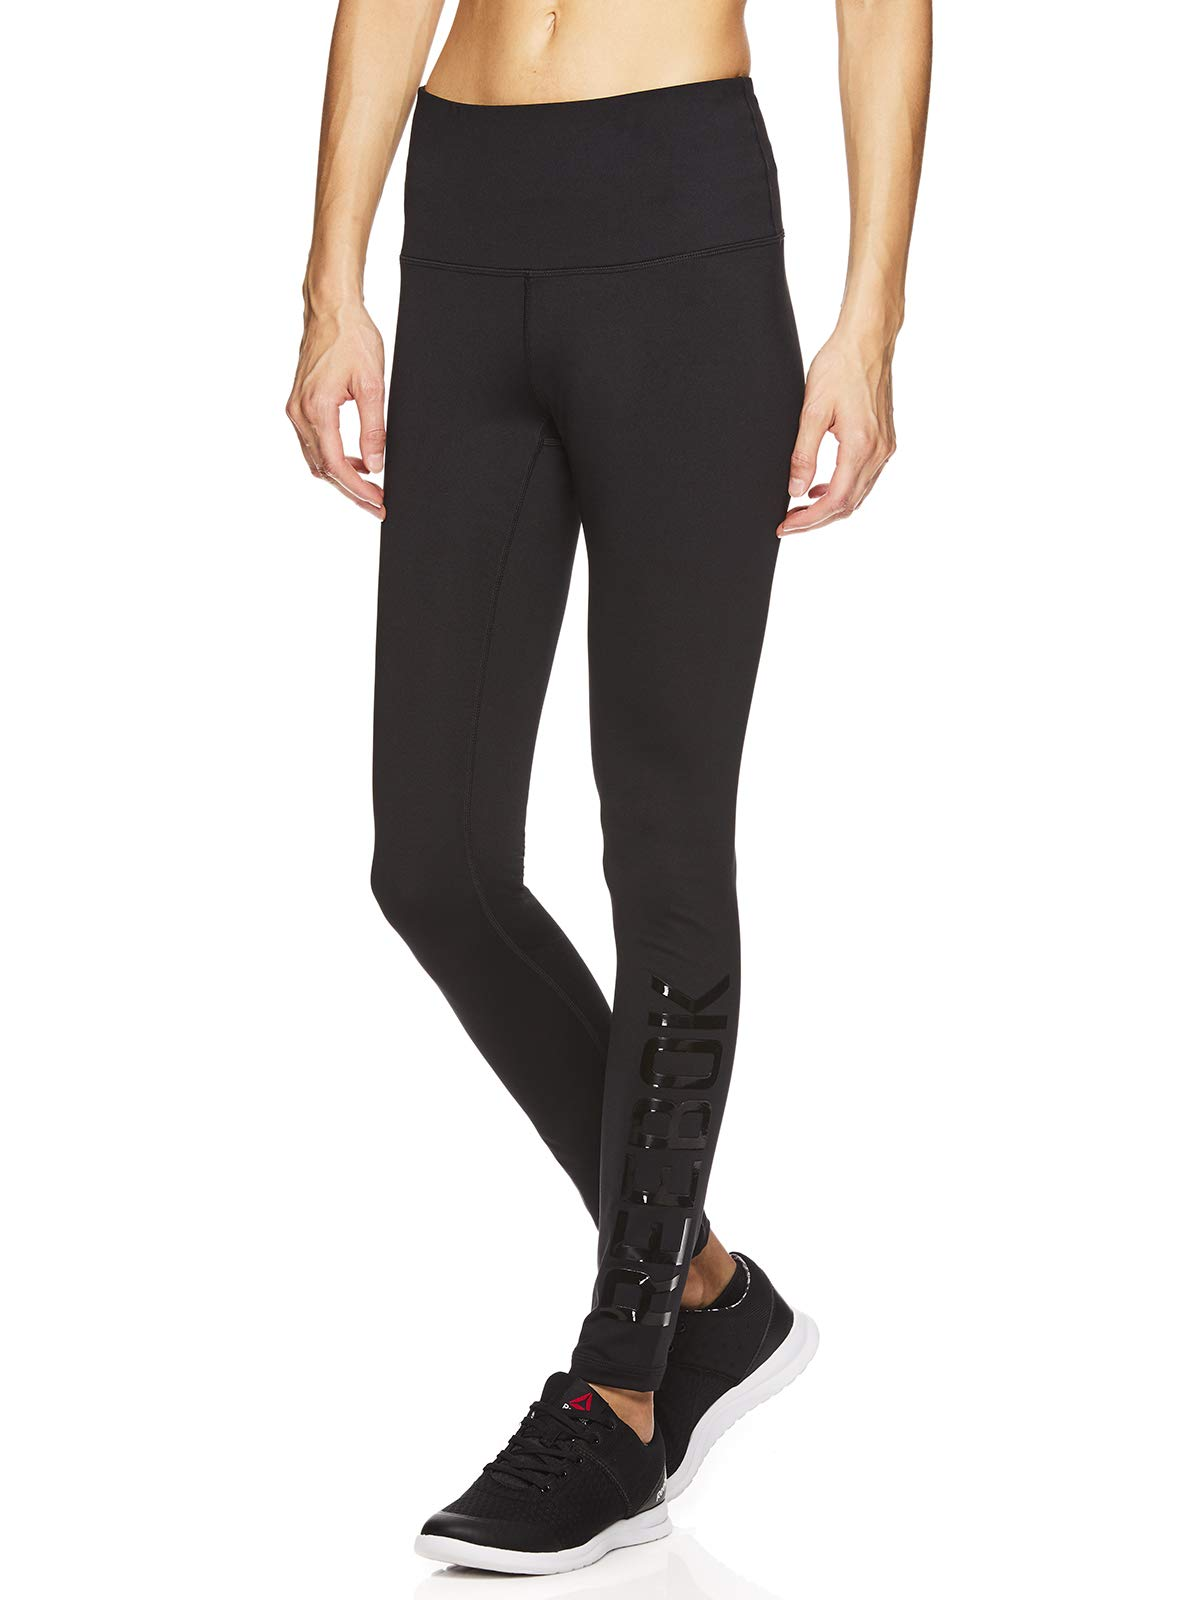 Reebok Women's Leggings Full Length Performance Compression Pants - Athletic Workout Leggings for Women for Gym & Sports - Respect Black, Small by Reebok